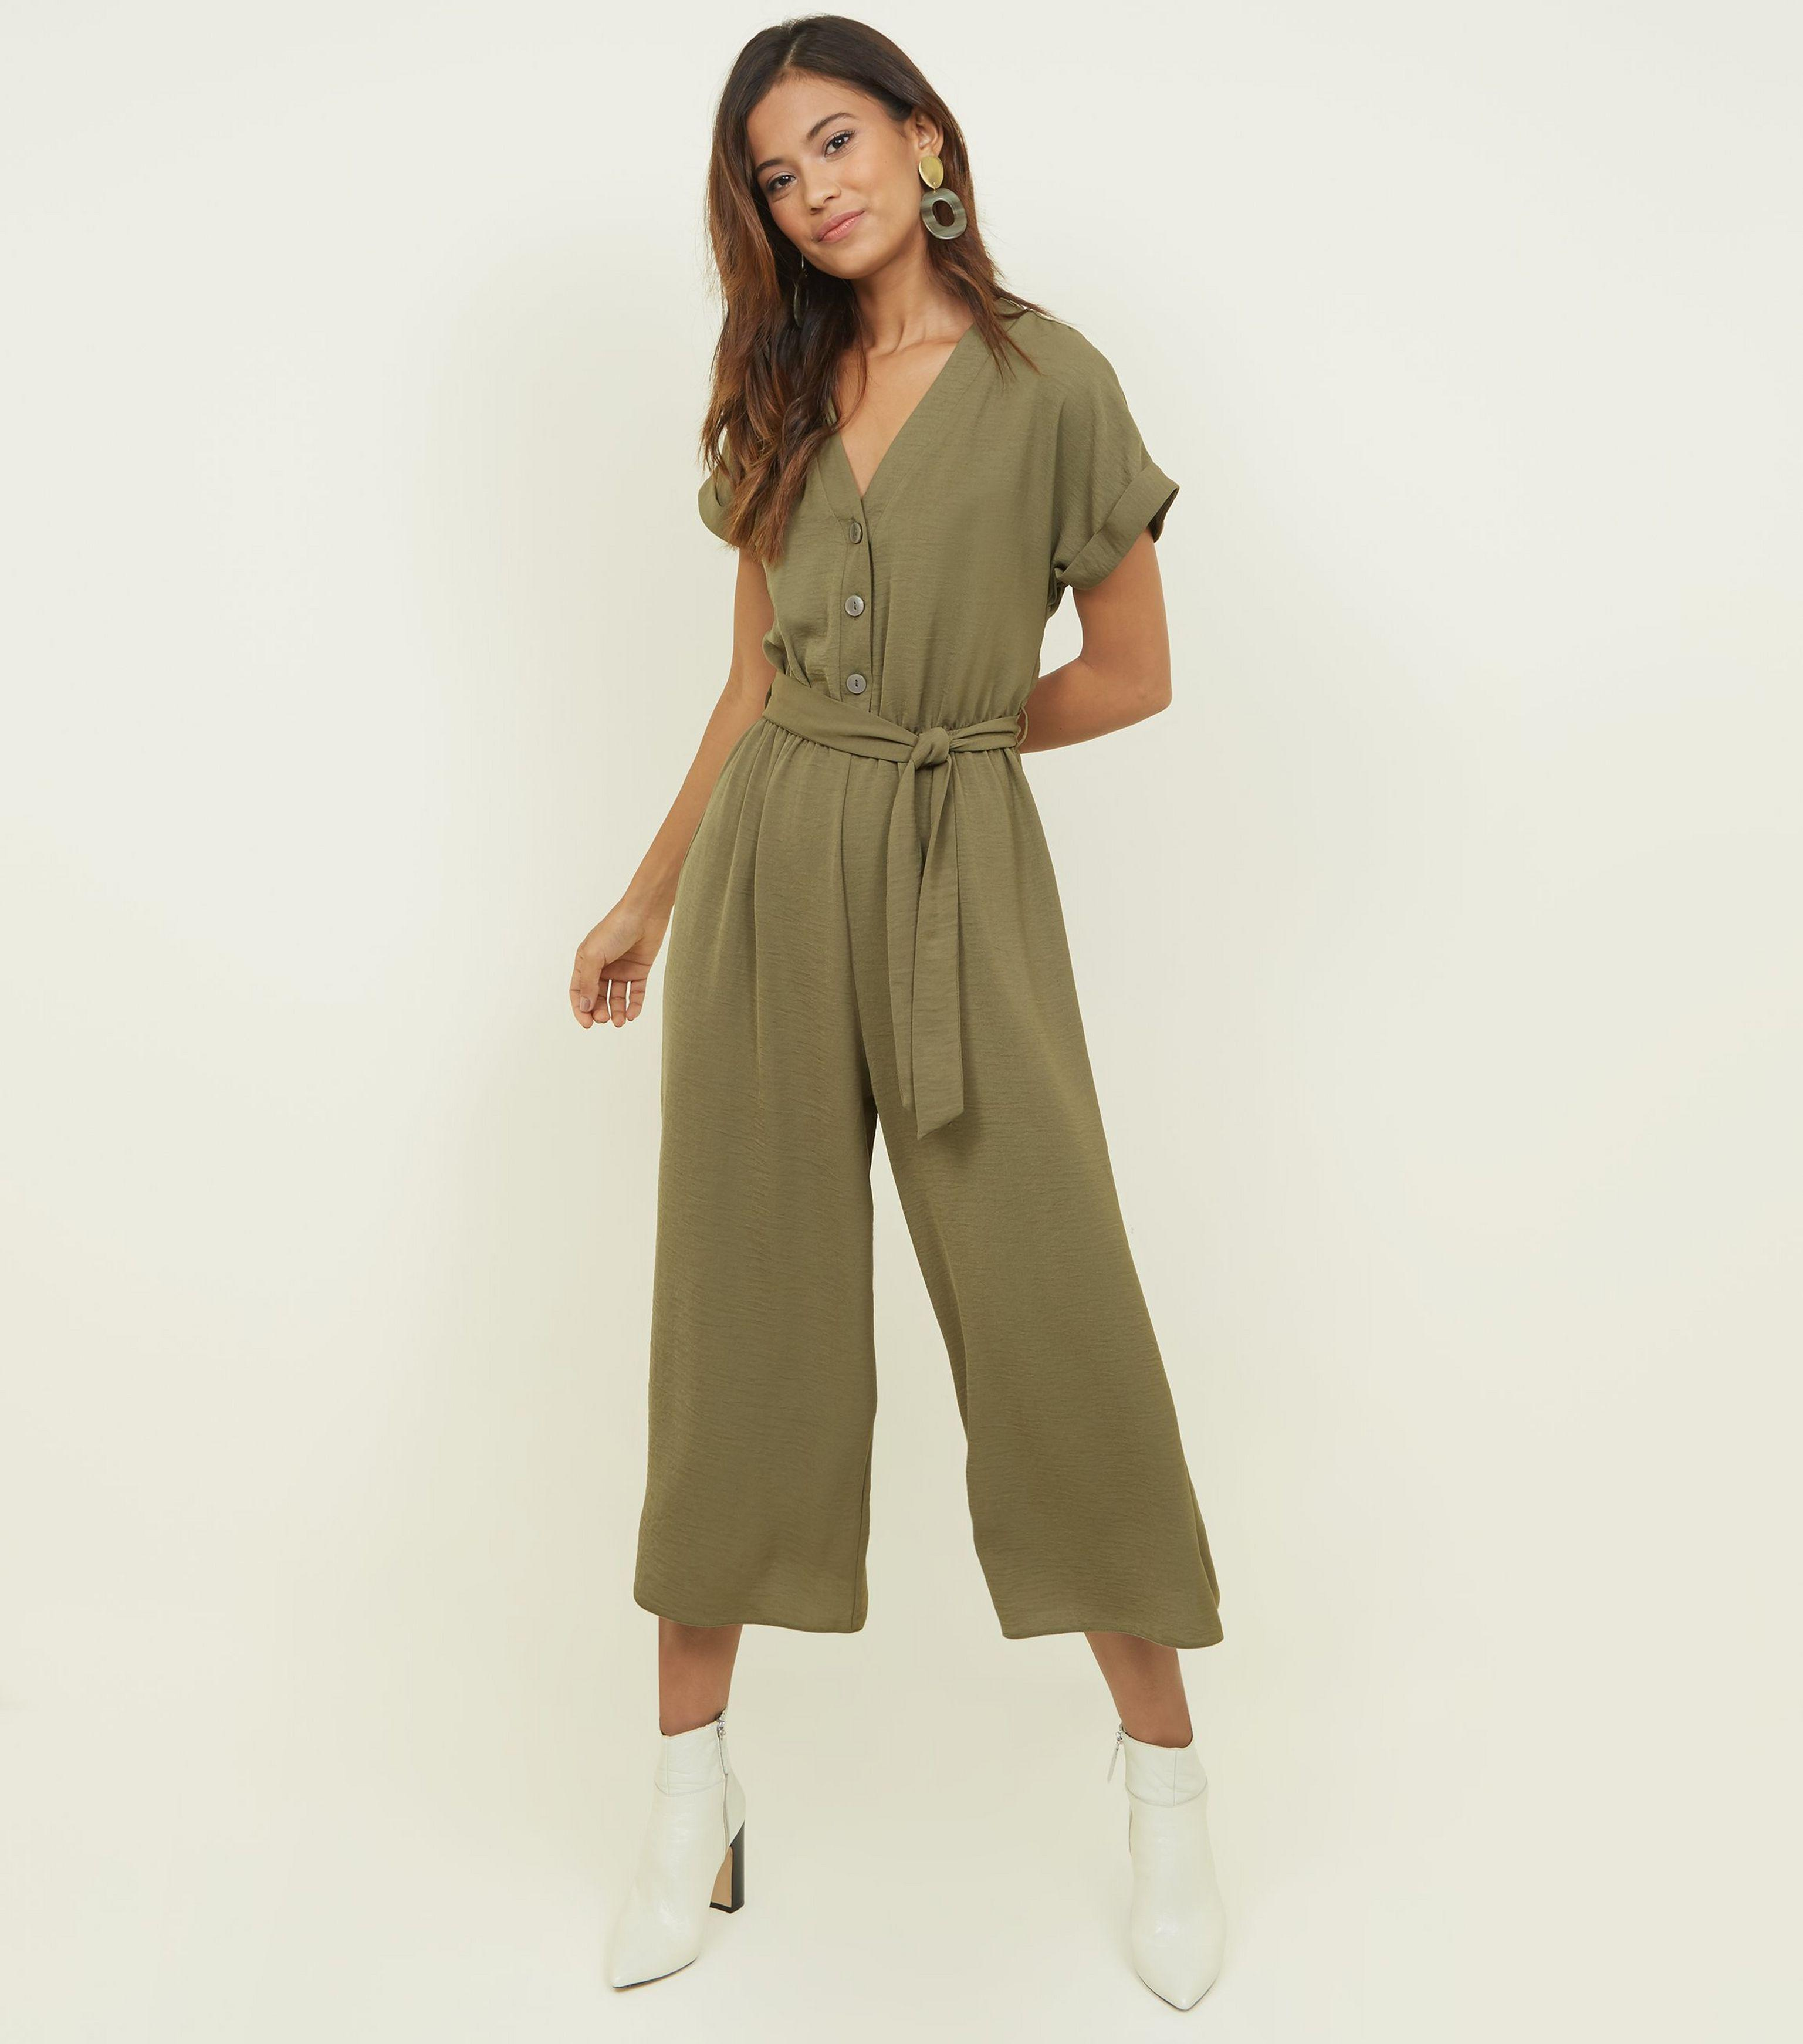 c1aa50778c New Look Khaki Button Front Linen-look Jumpsuit in Natural - Lyst